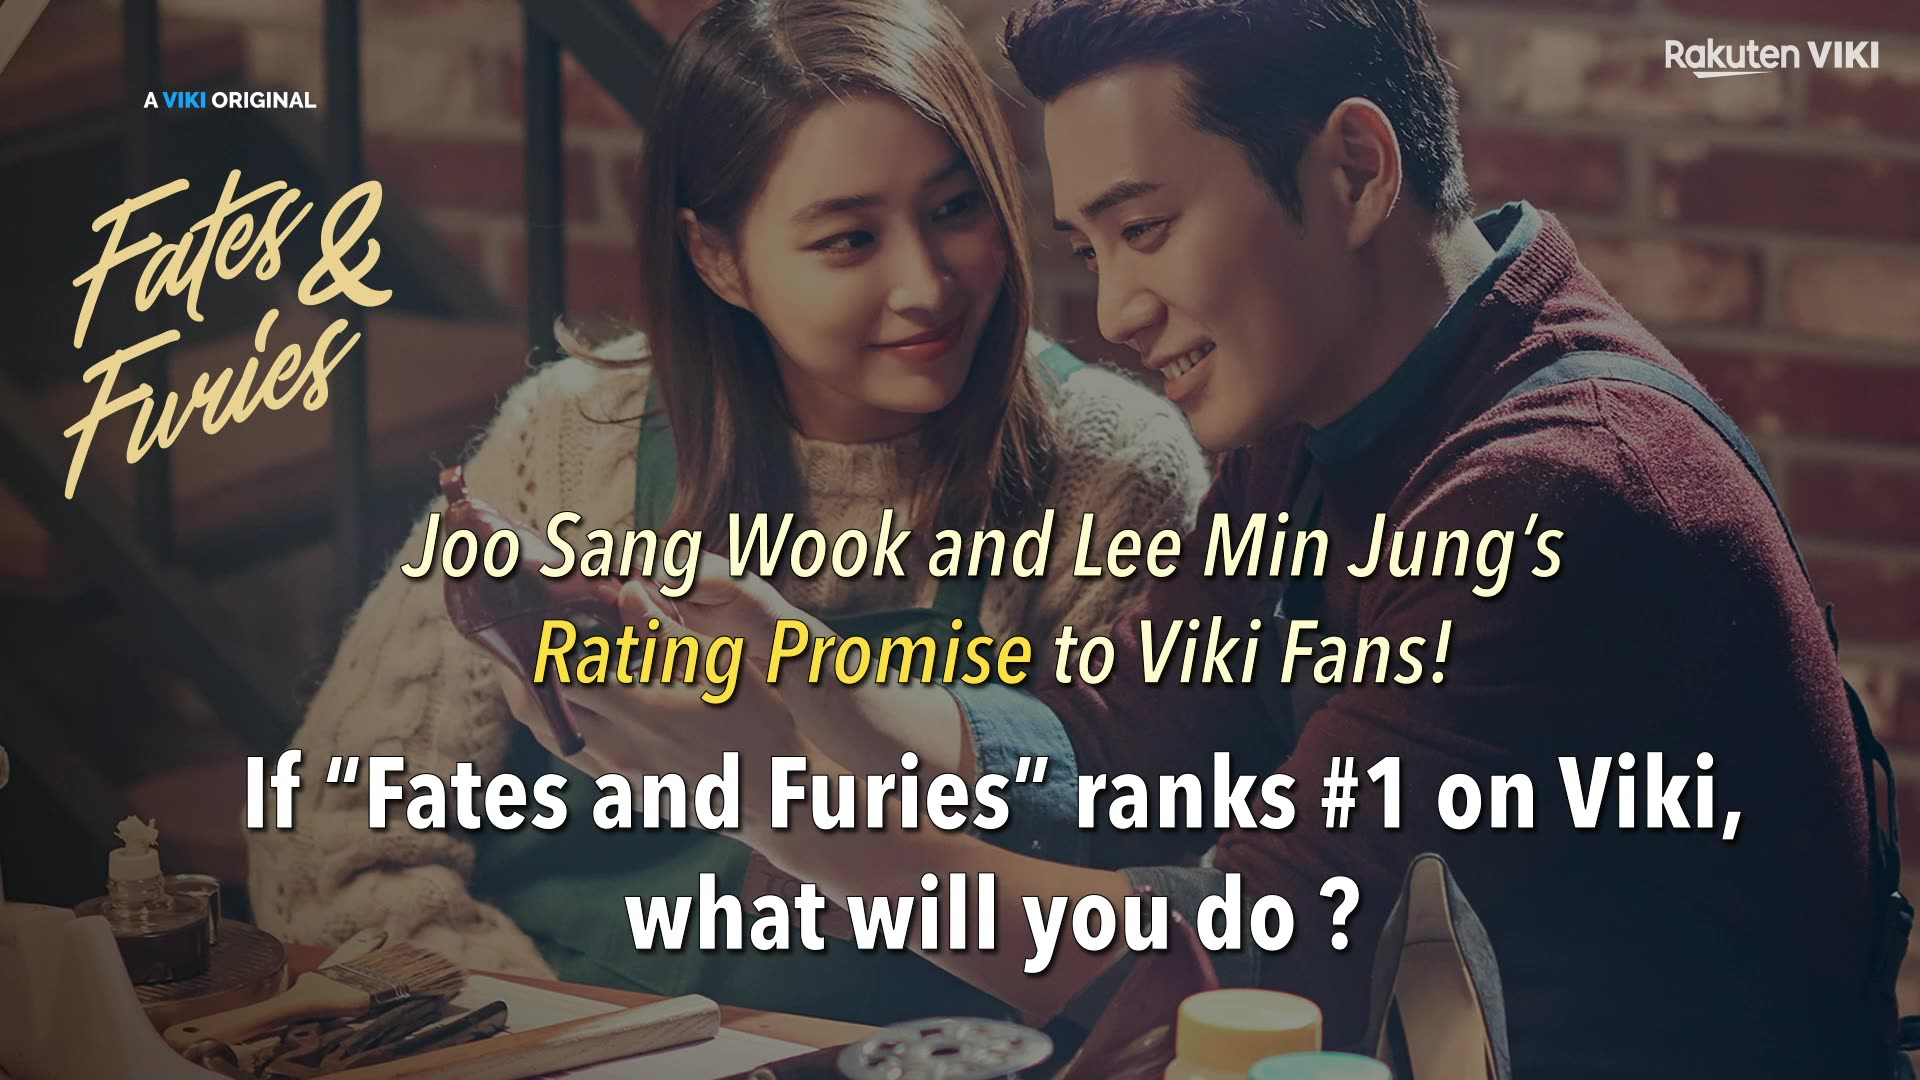 Viewer Ratings Promise With Viki Fans: Fates and Furies